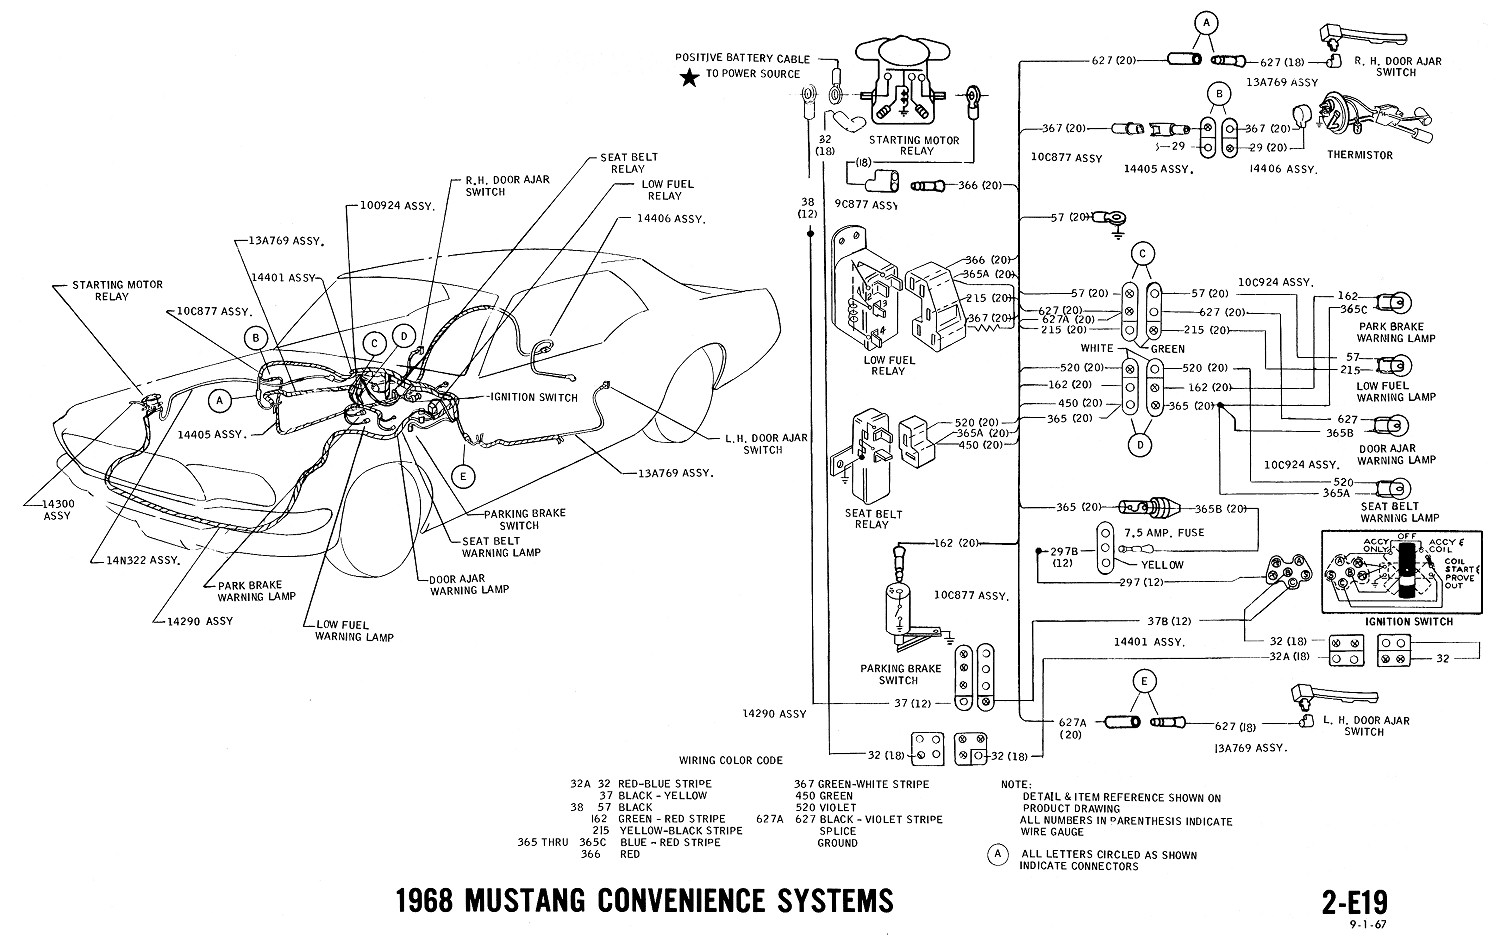 1968 Mustang Wiring Diagrams on air horn wiring diagram